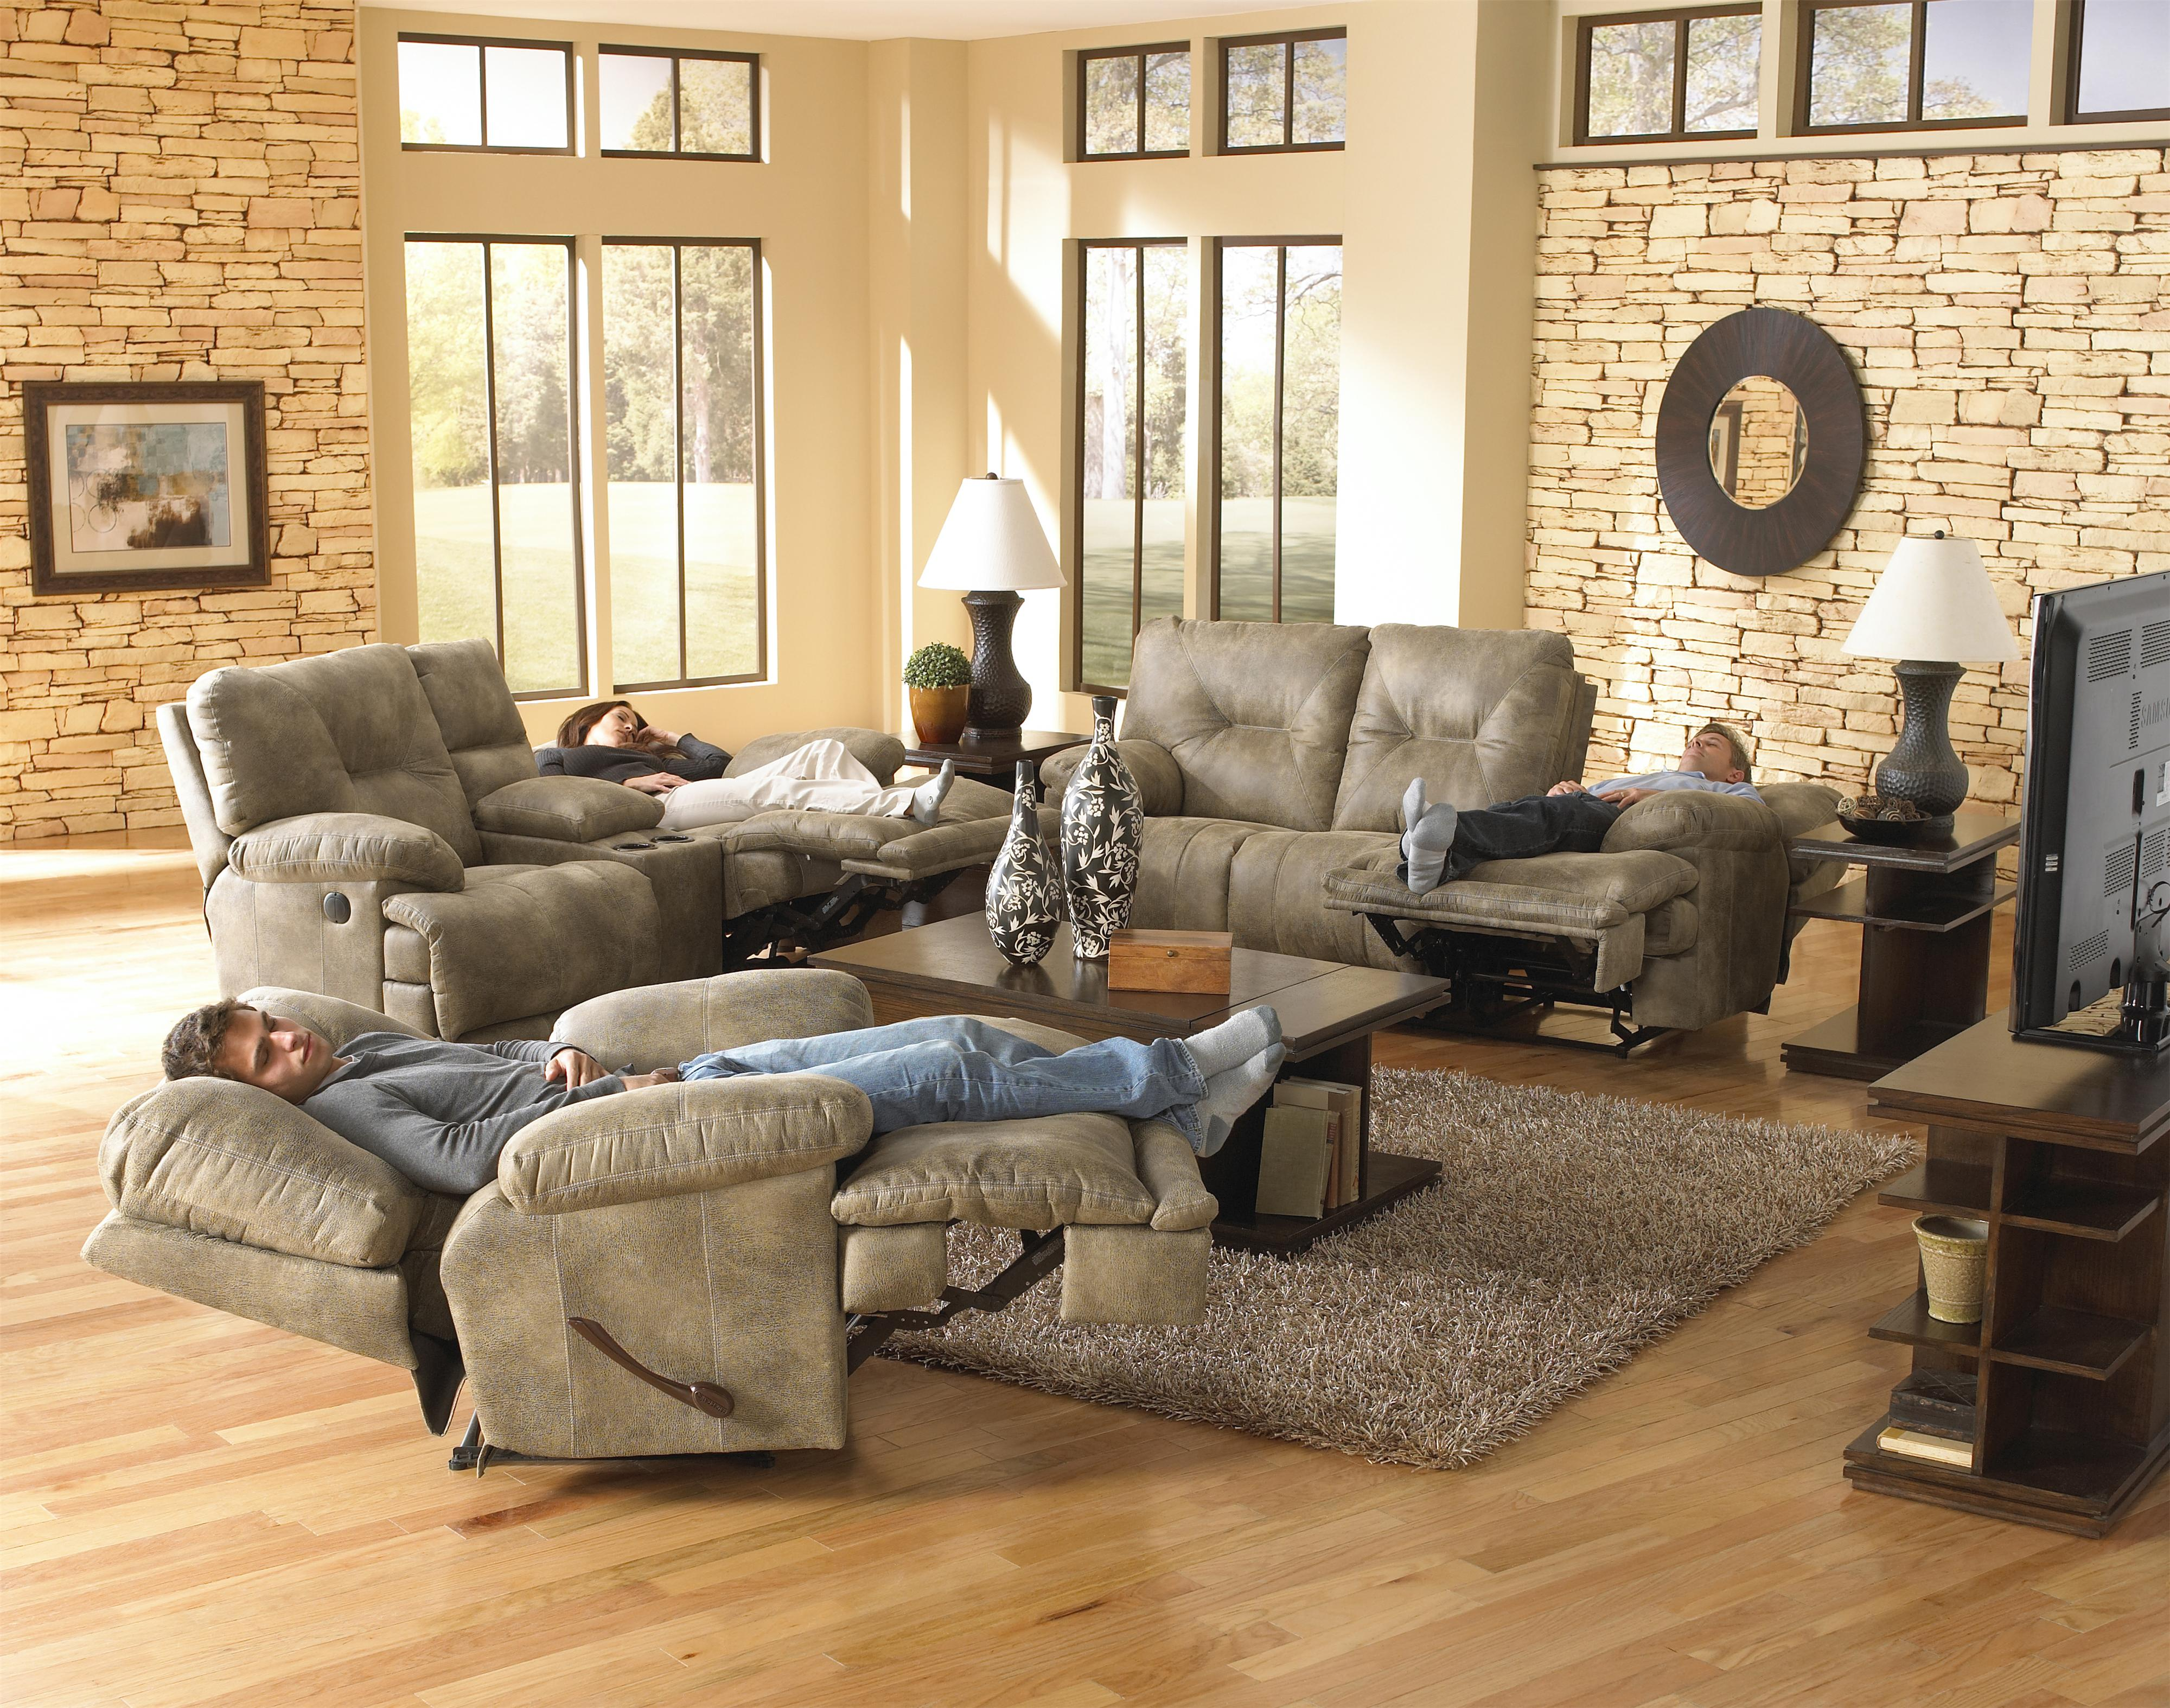 Voyager Reclining Living Room Group by Catnapper at Northeast Factory Direct